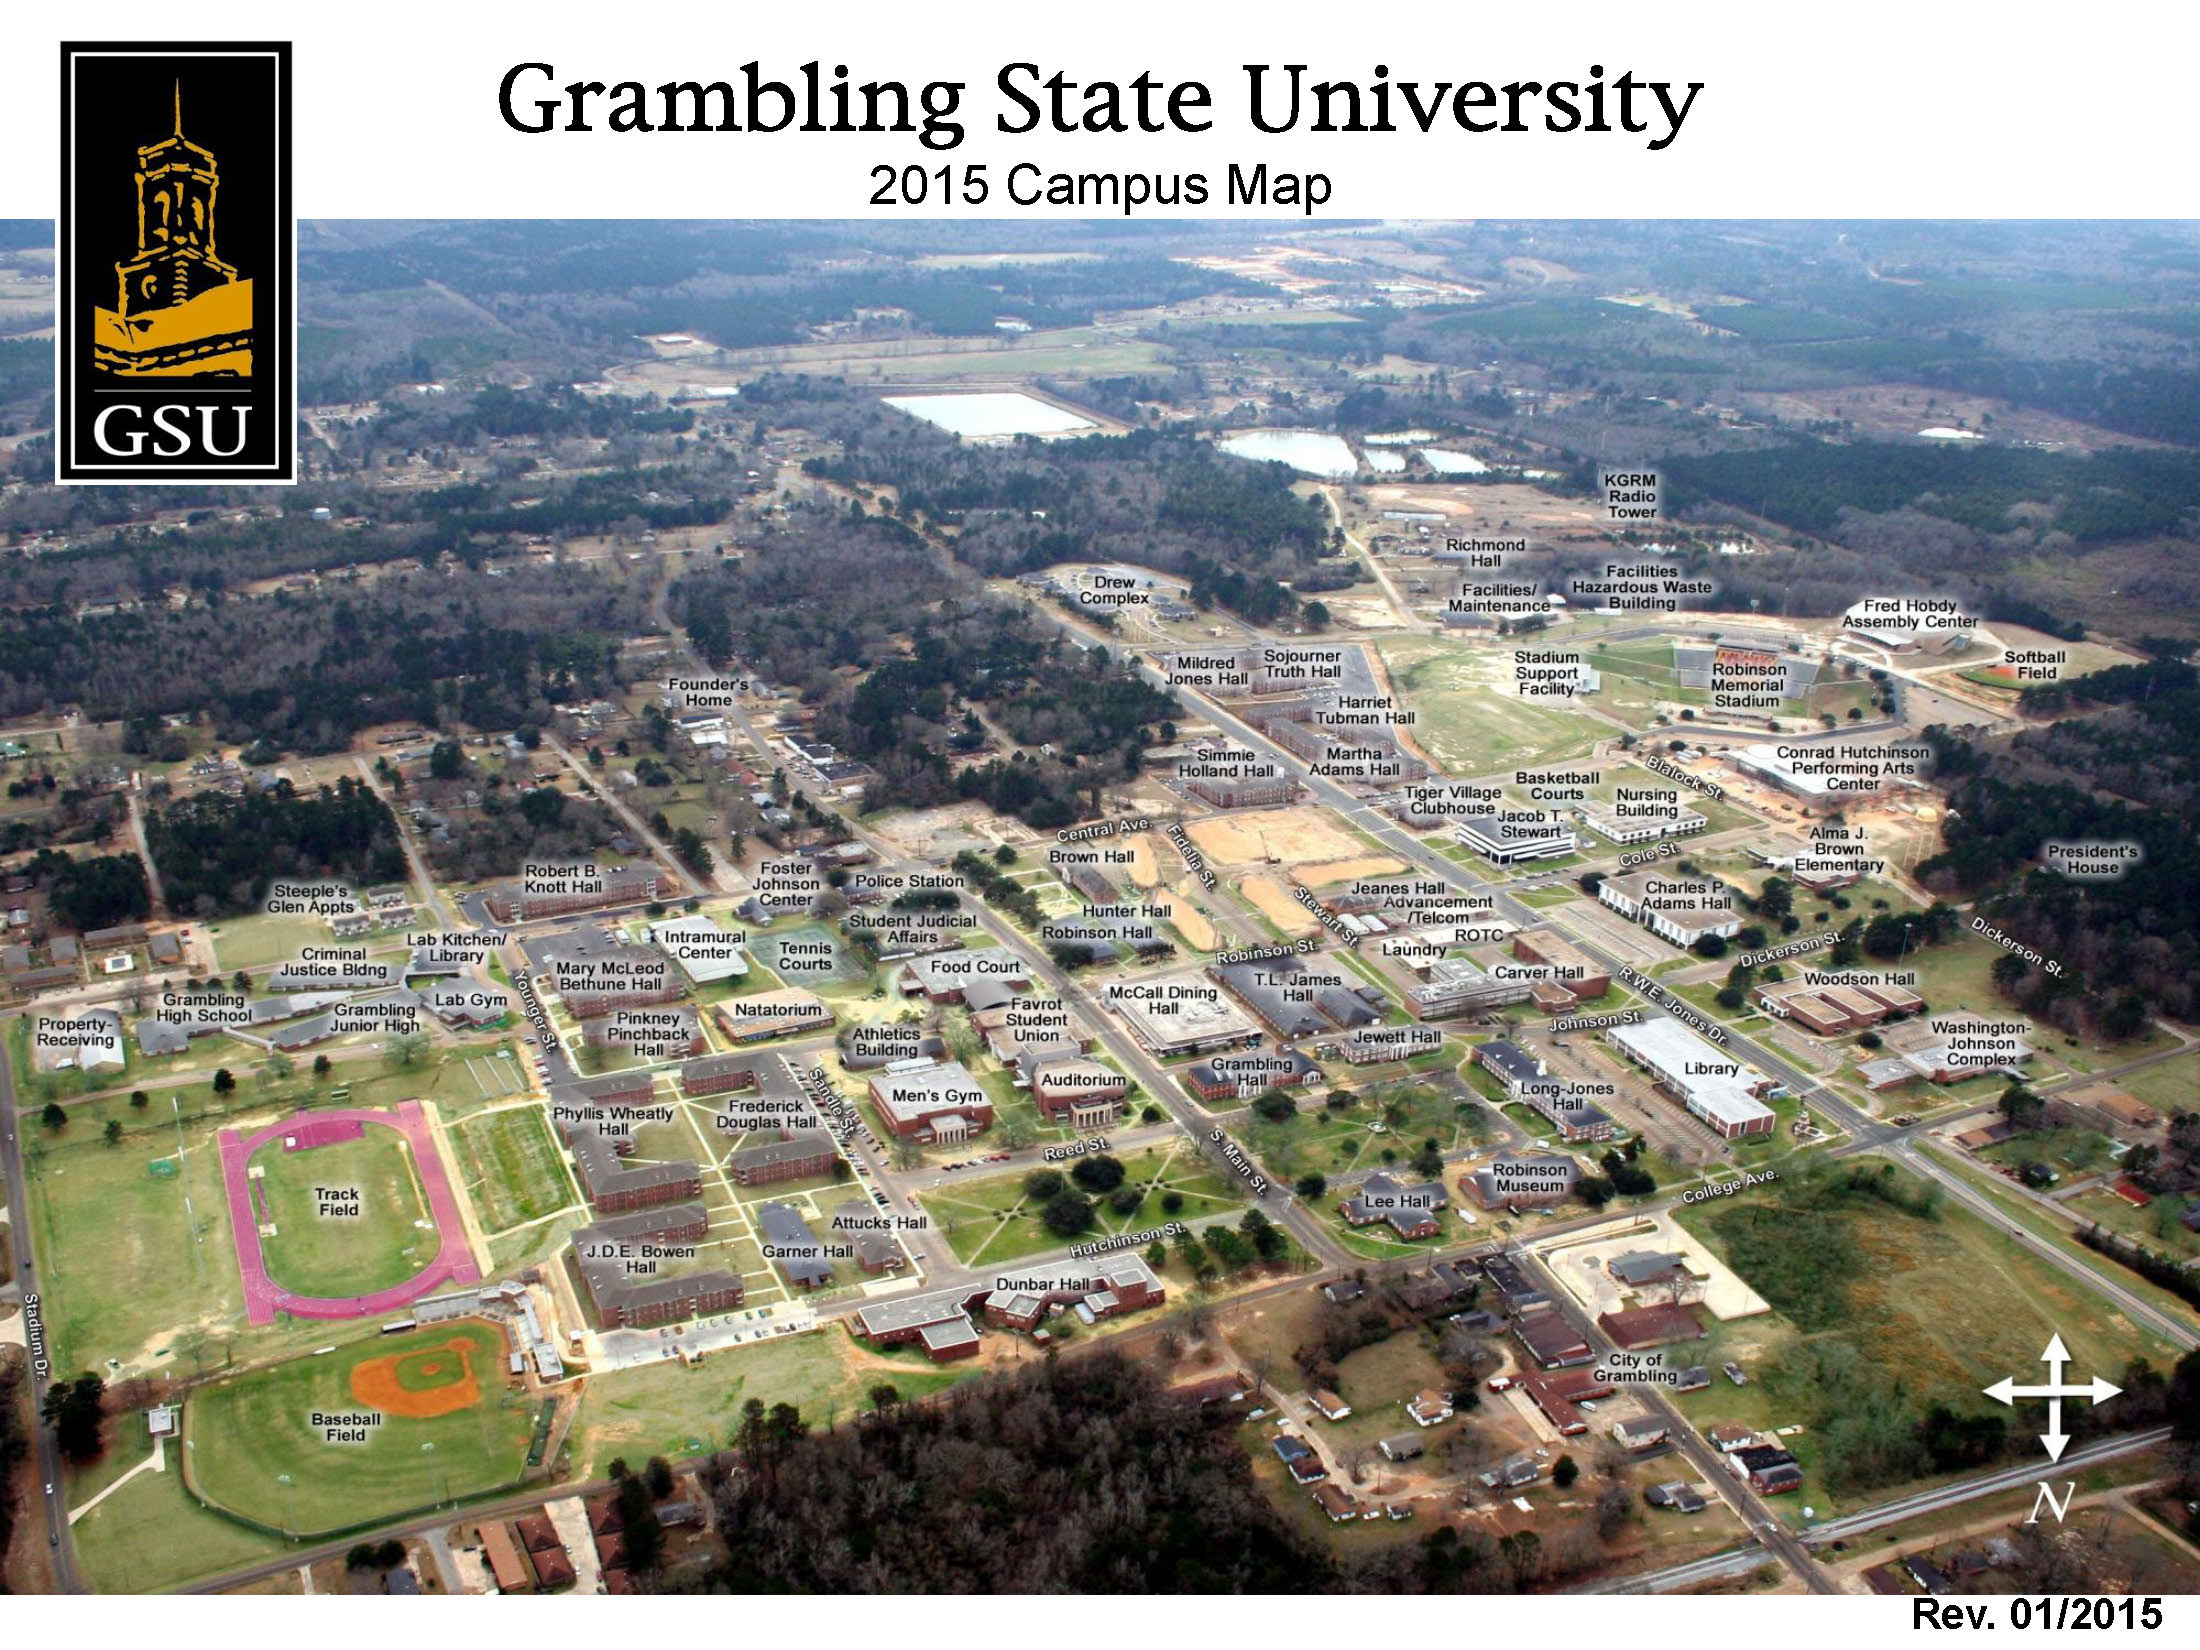 Alcorn State University Campus Map.Grambling State University Campus Map